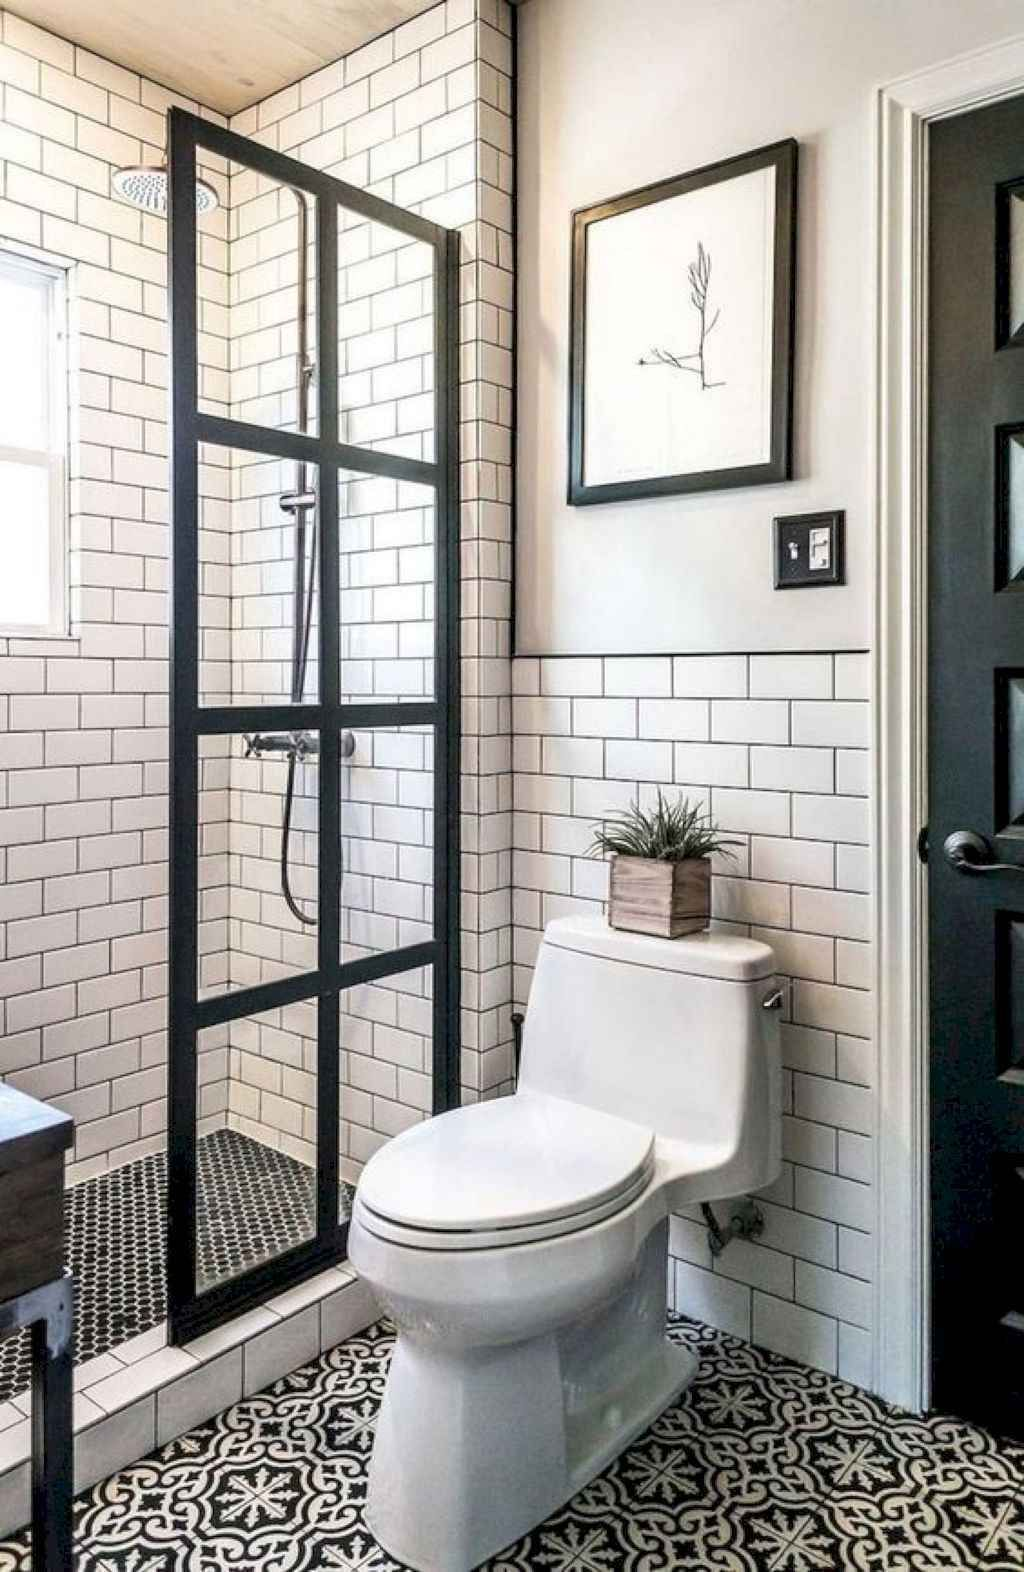 36 insane farmhouse shower tiles remodel ideas with on beautiful farmhouse bathroom shower decor ideas and remodel an extraordinary design id=72778